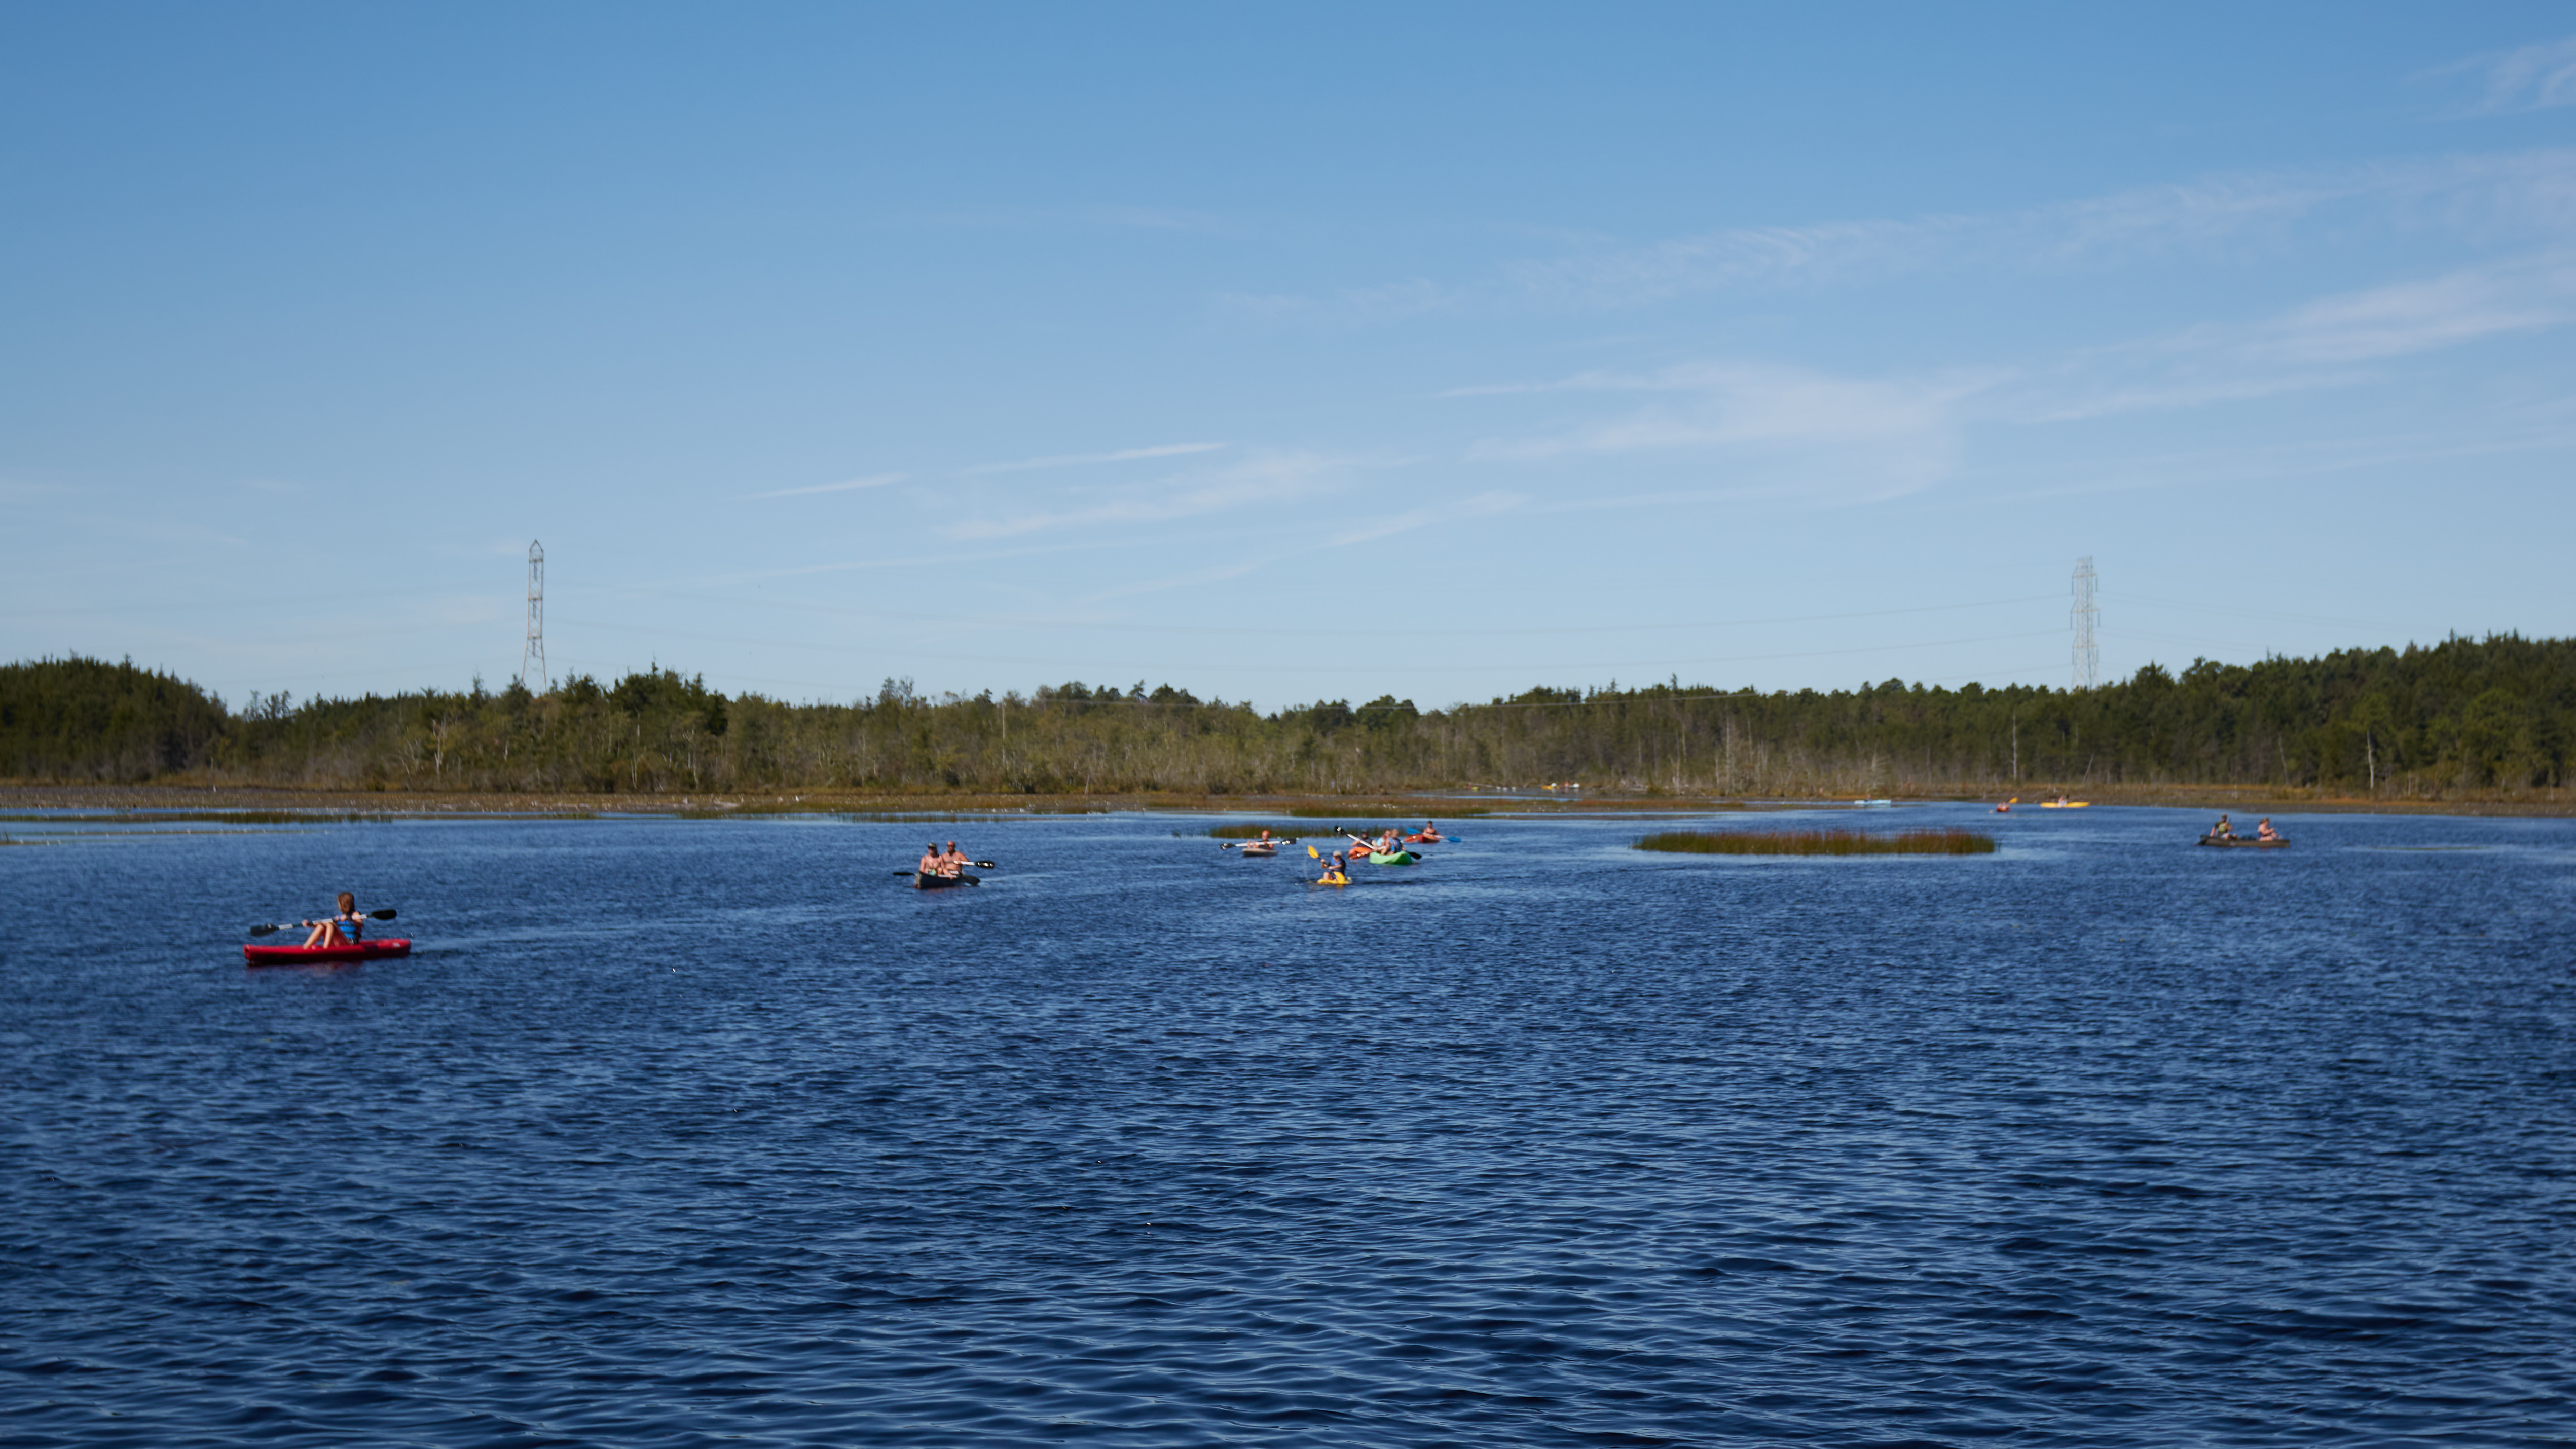 Mill Pond reservoir, with kayakers on the water.